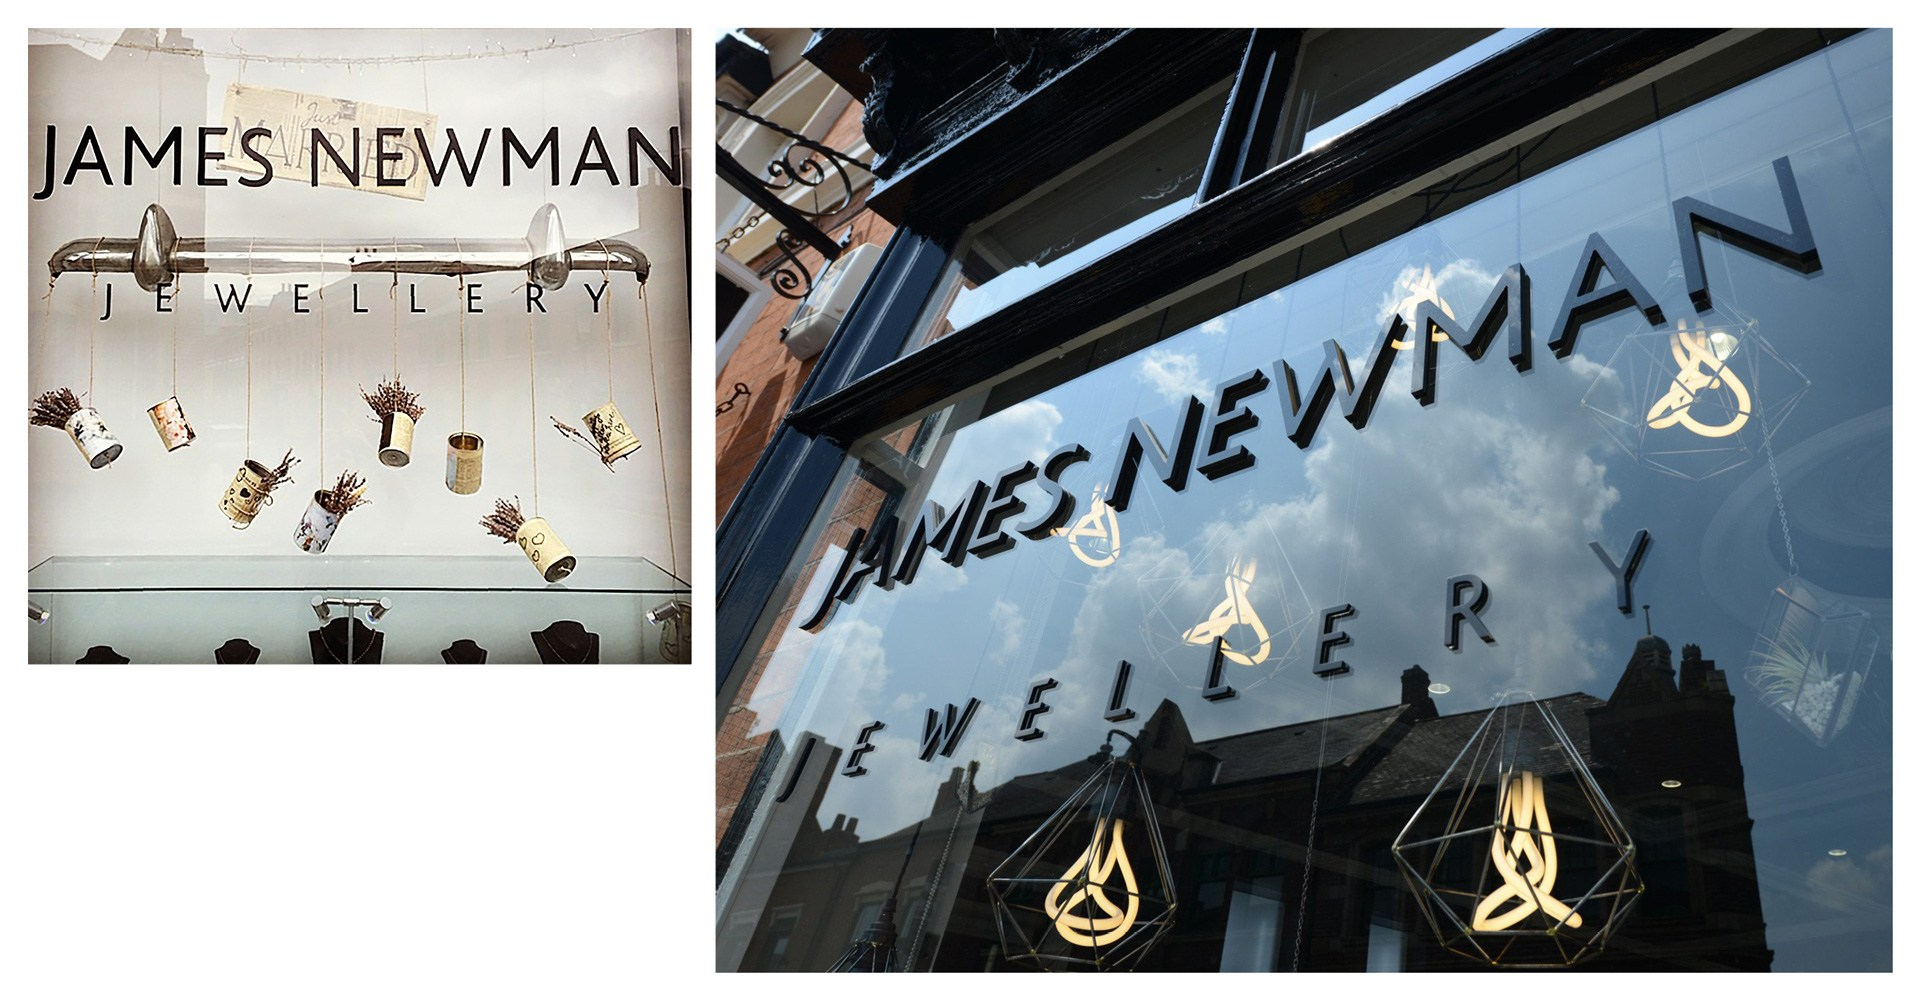 James Newman Jewellery - Store Front